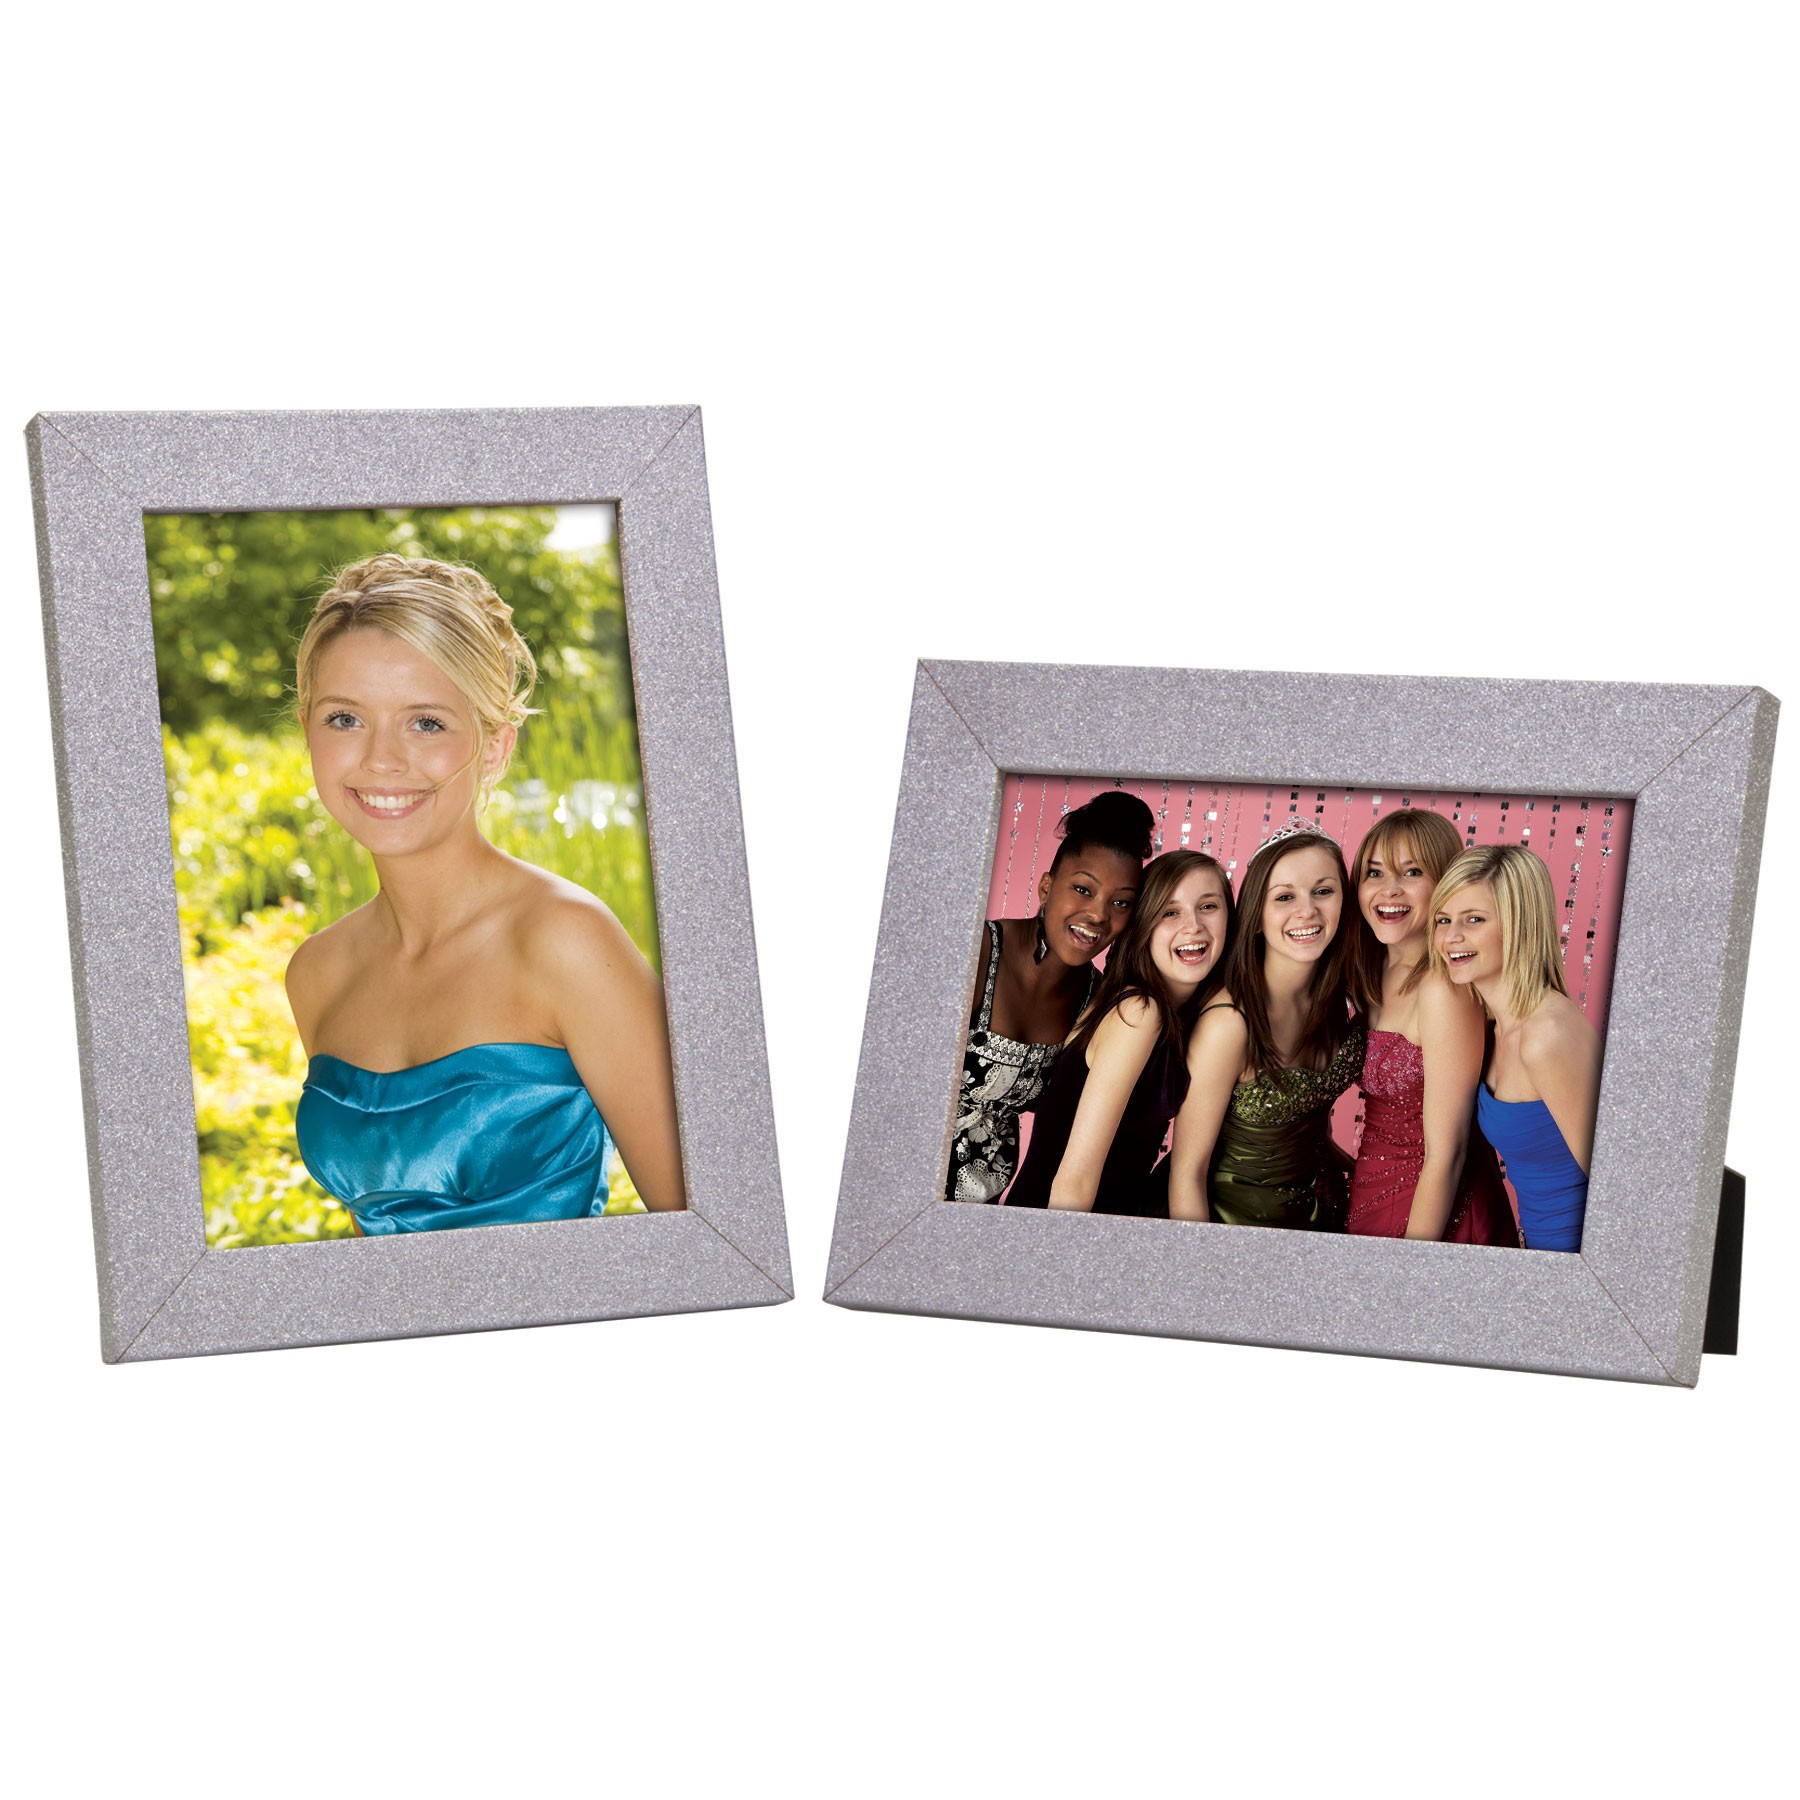 Wholesale sparkly shimmer 4x6 picture frame for special events wholesale sparkle shimmer 4x6 picture frames jeuxipadfo Images